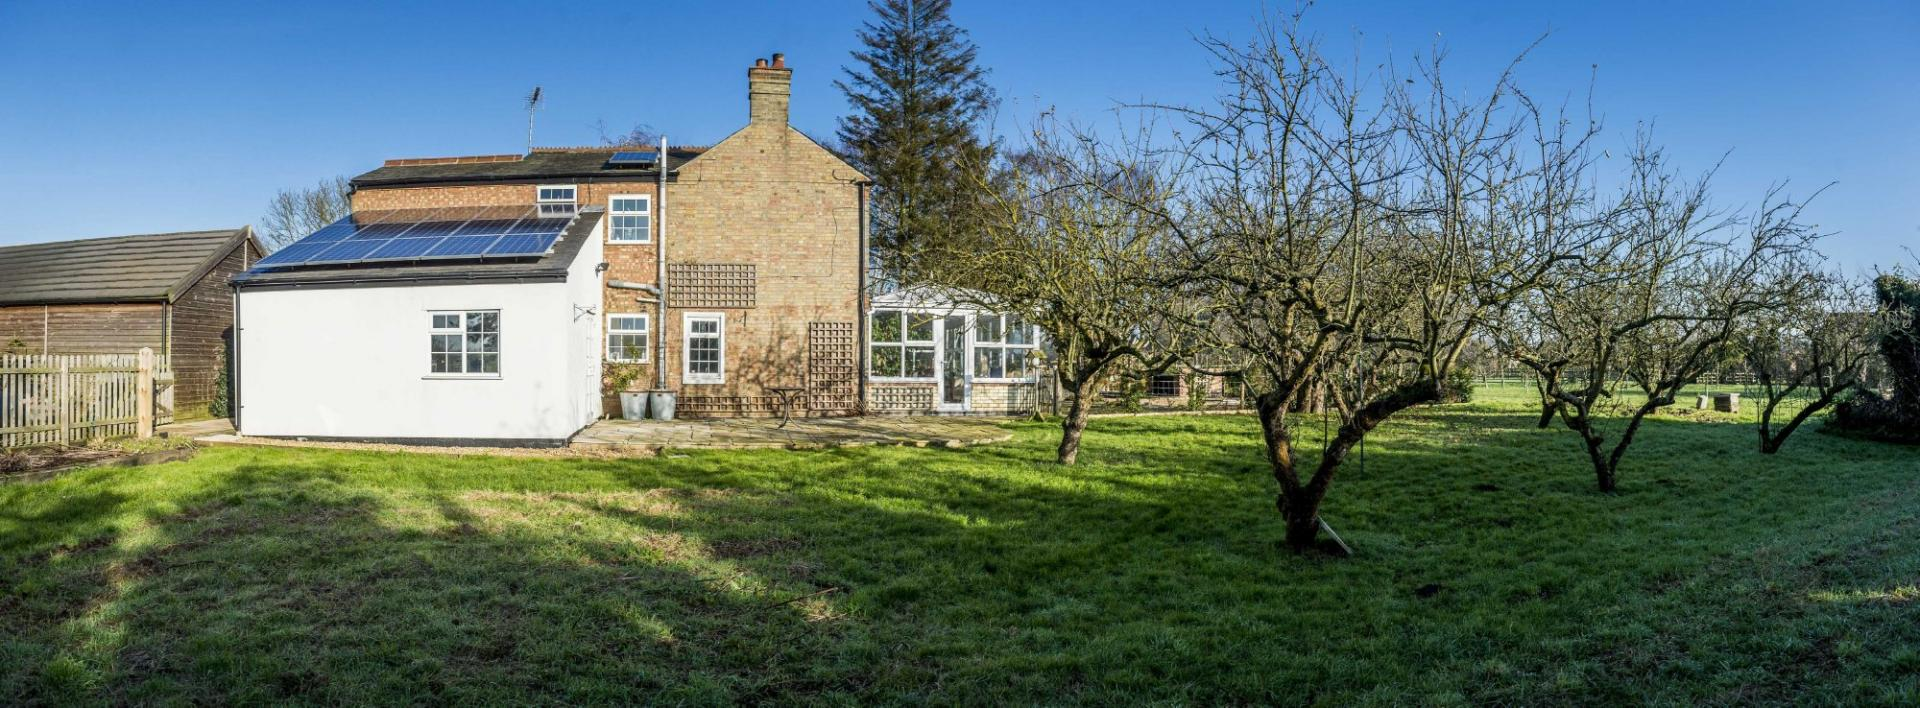 Fenland Property For Sale